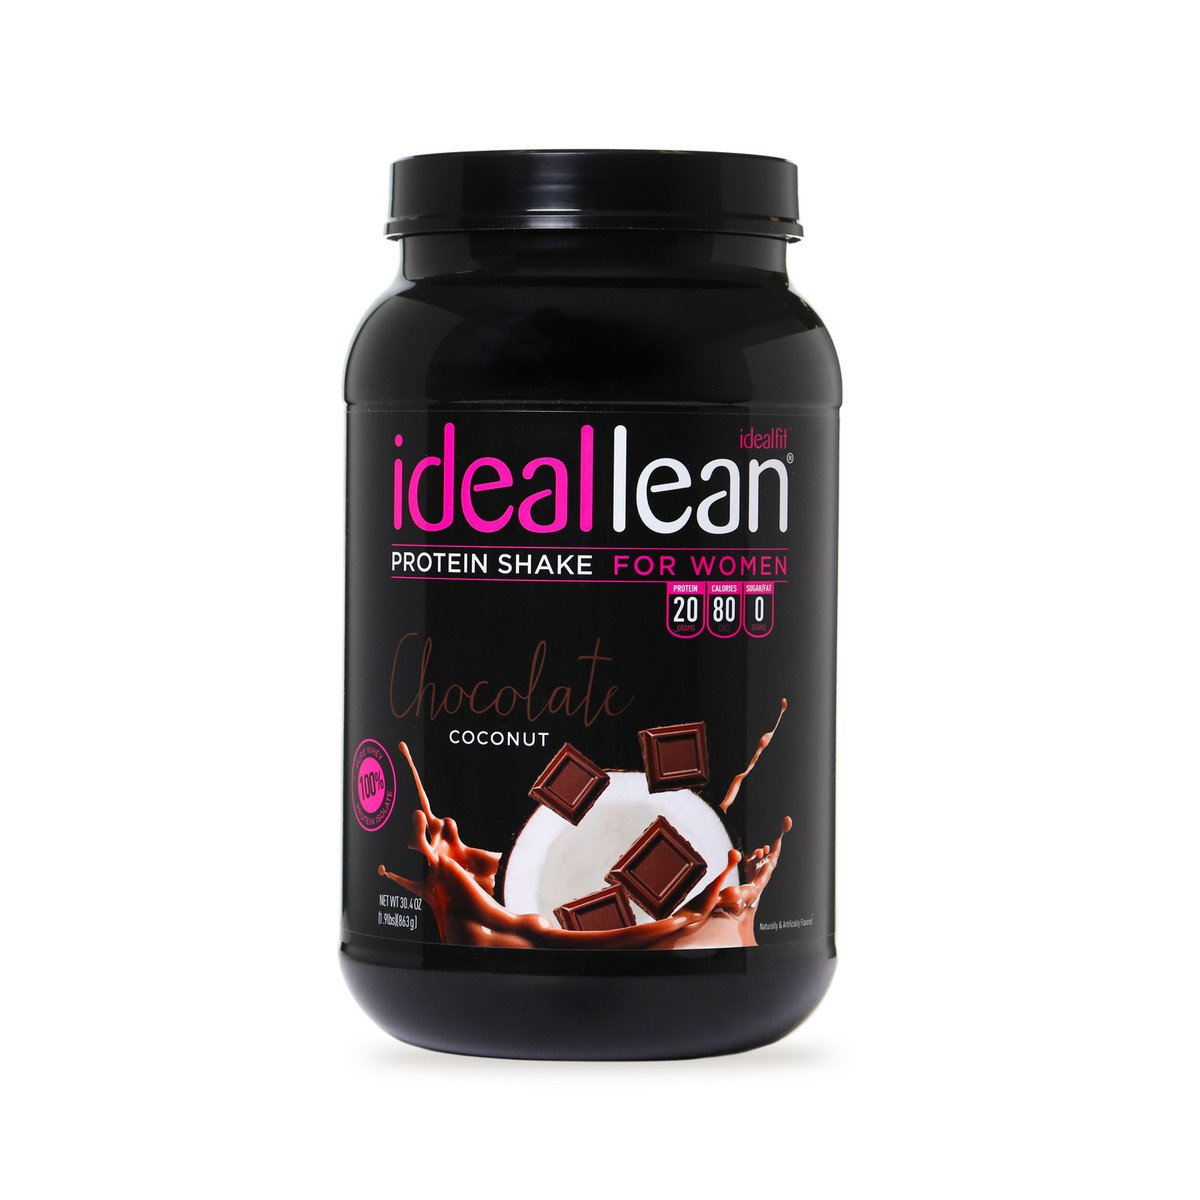 IdealLean - Nutritional Protein Powder for Women | 20g Whey Protein Isolate | Supports Weight Loss | Healthy Low Carb Shakes with Folic Acid & Vitamin D | 30 Servings (Chocolate Coconut)